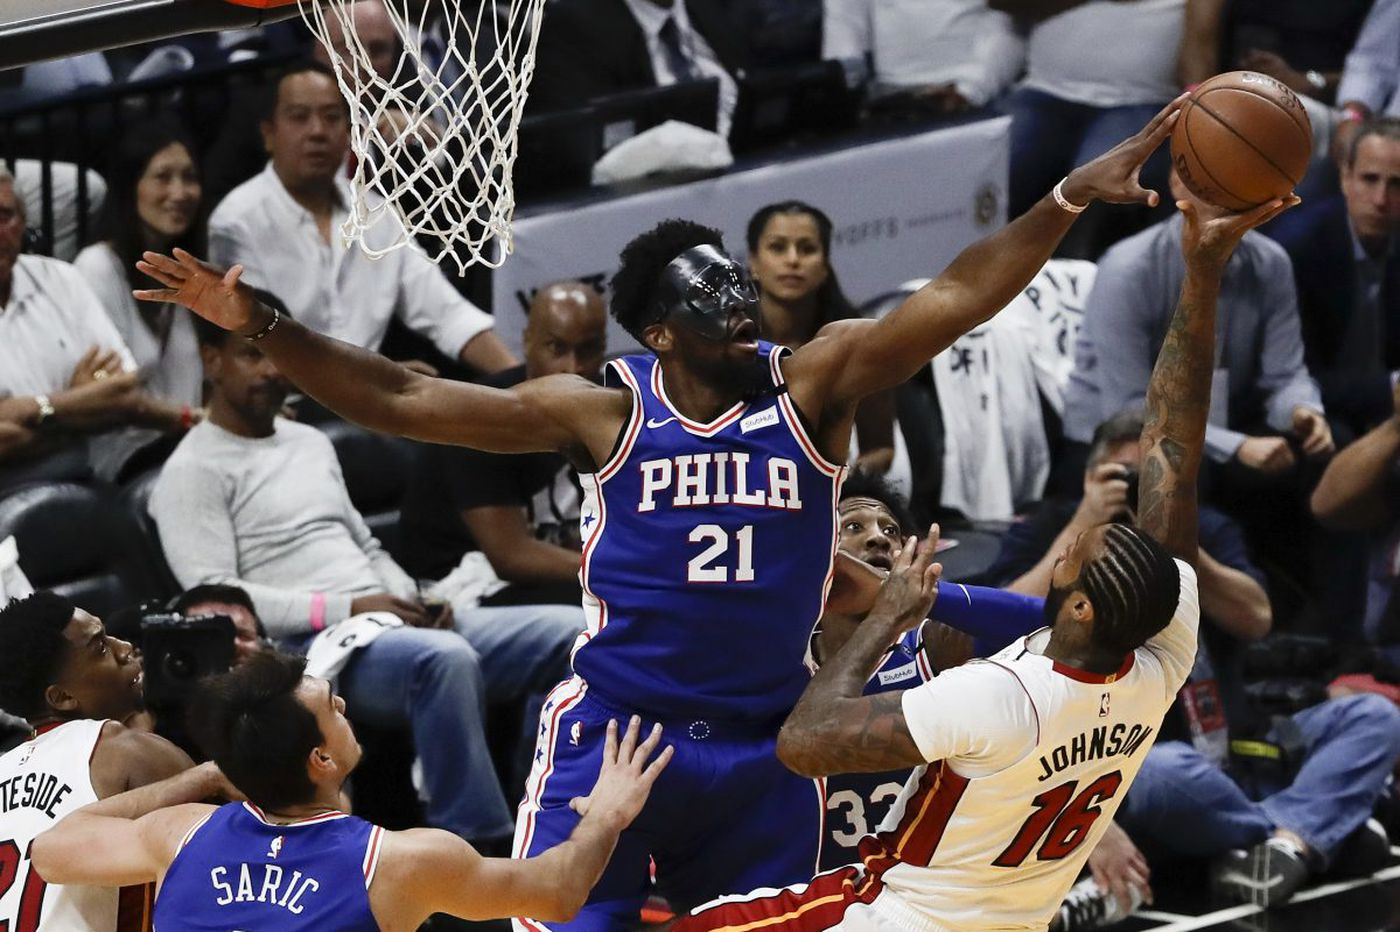 Joel Embiid leads Sixers to NBA playoff victory over Heat in first game back